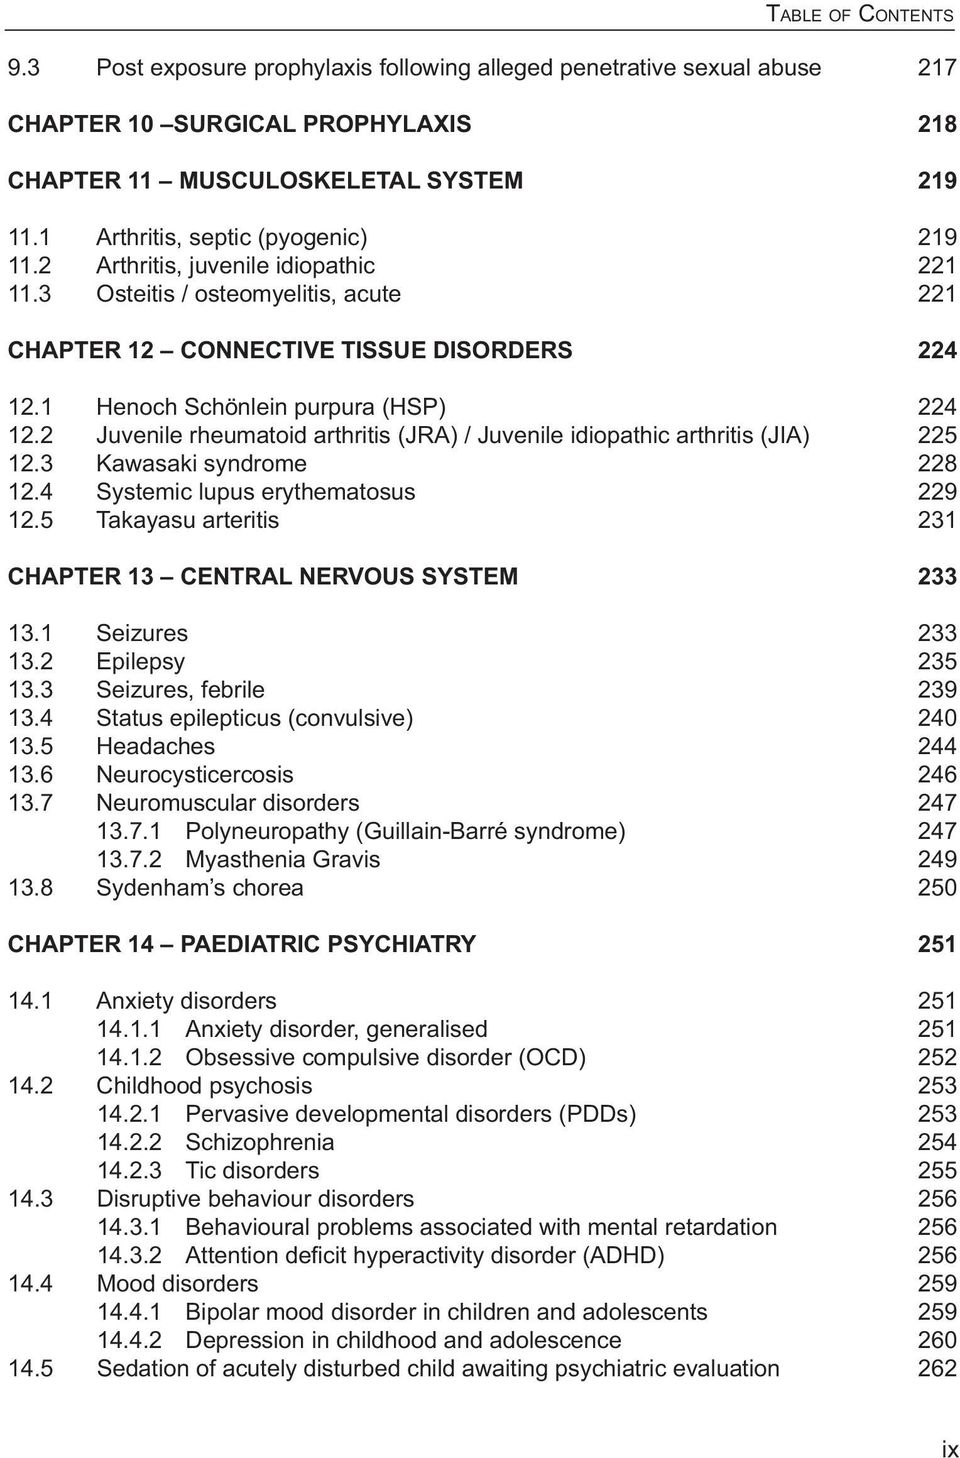 4 Systemic lupus erythematosus CHAPTER 13 CENTRAL NERVOUS SYSTEM 13.1 Seizures 13.2 Epilepsy 13.3 Seizures, febrile 13.4 Status epilepticus (convulsive) 13.5 Headaches 13.6 Neurocysticercosis 13.